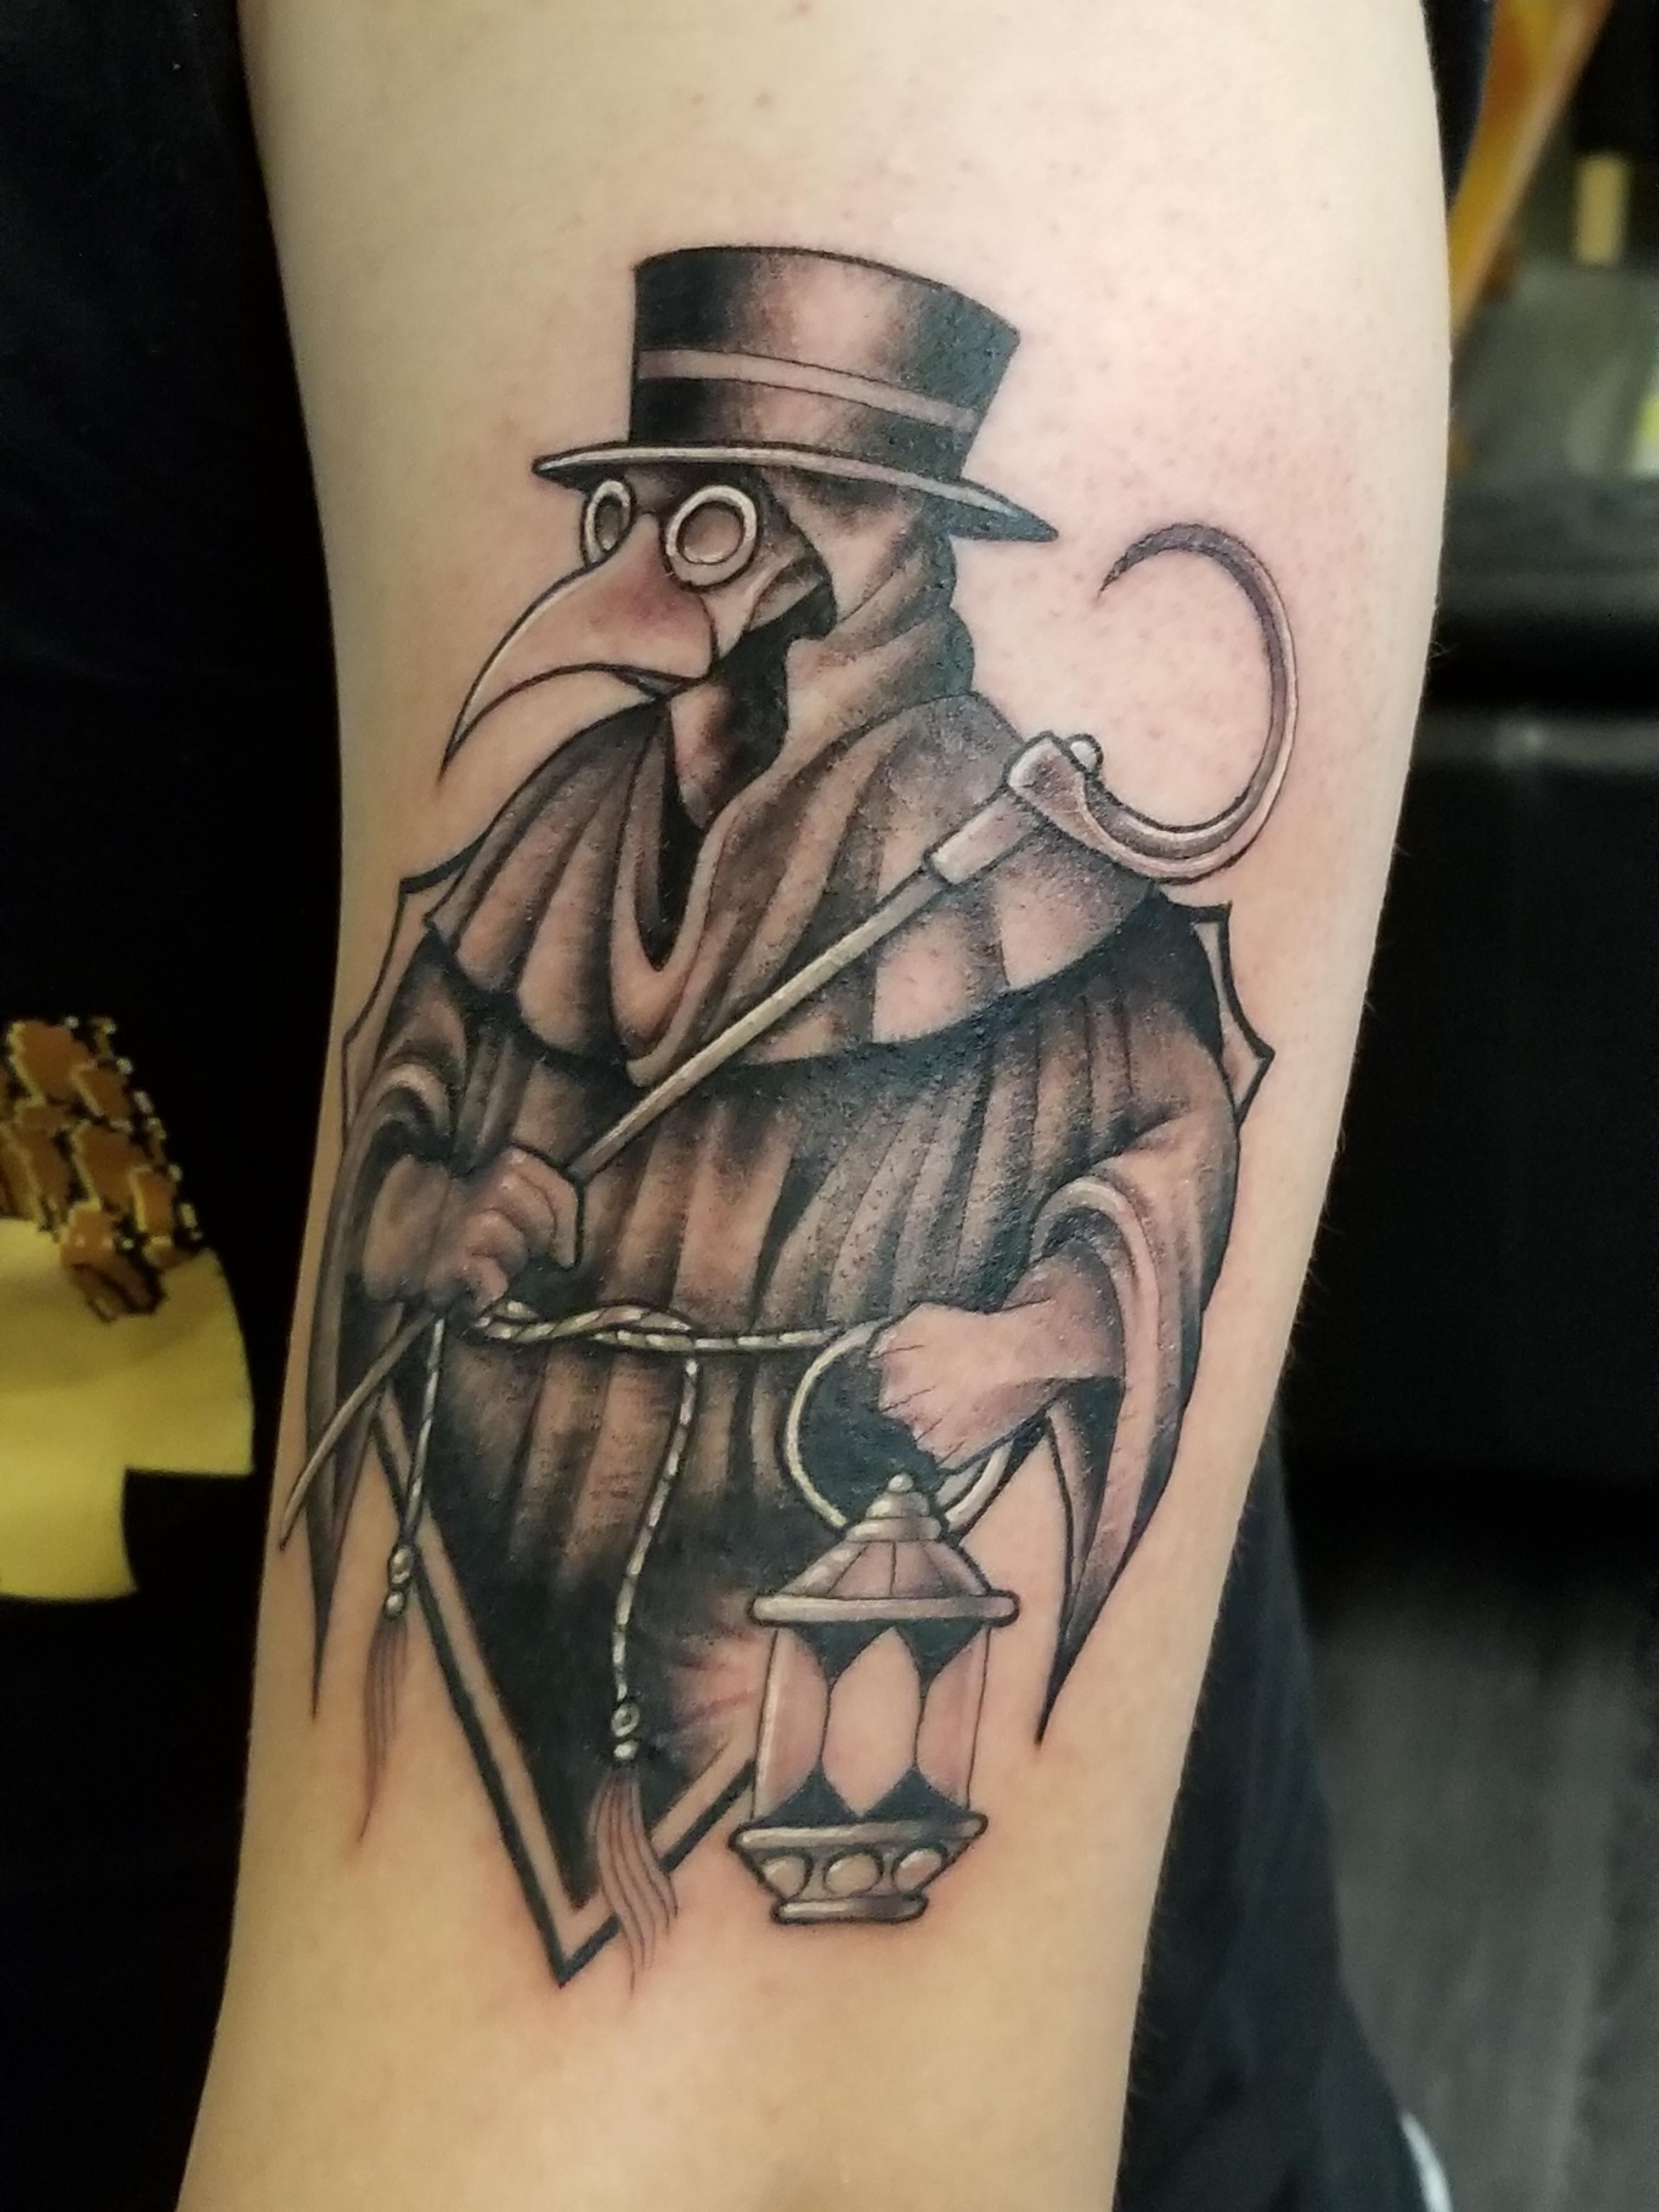 Plague Doctor by Max Lowe at Olde Line Tattoo in